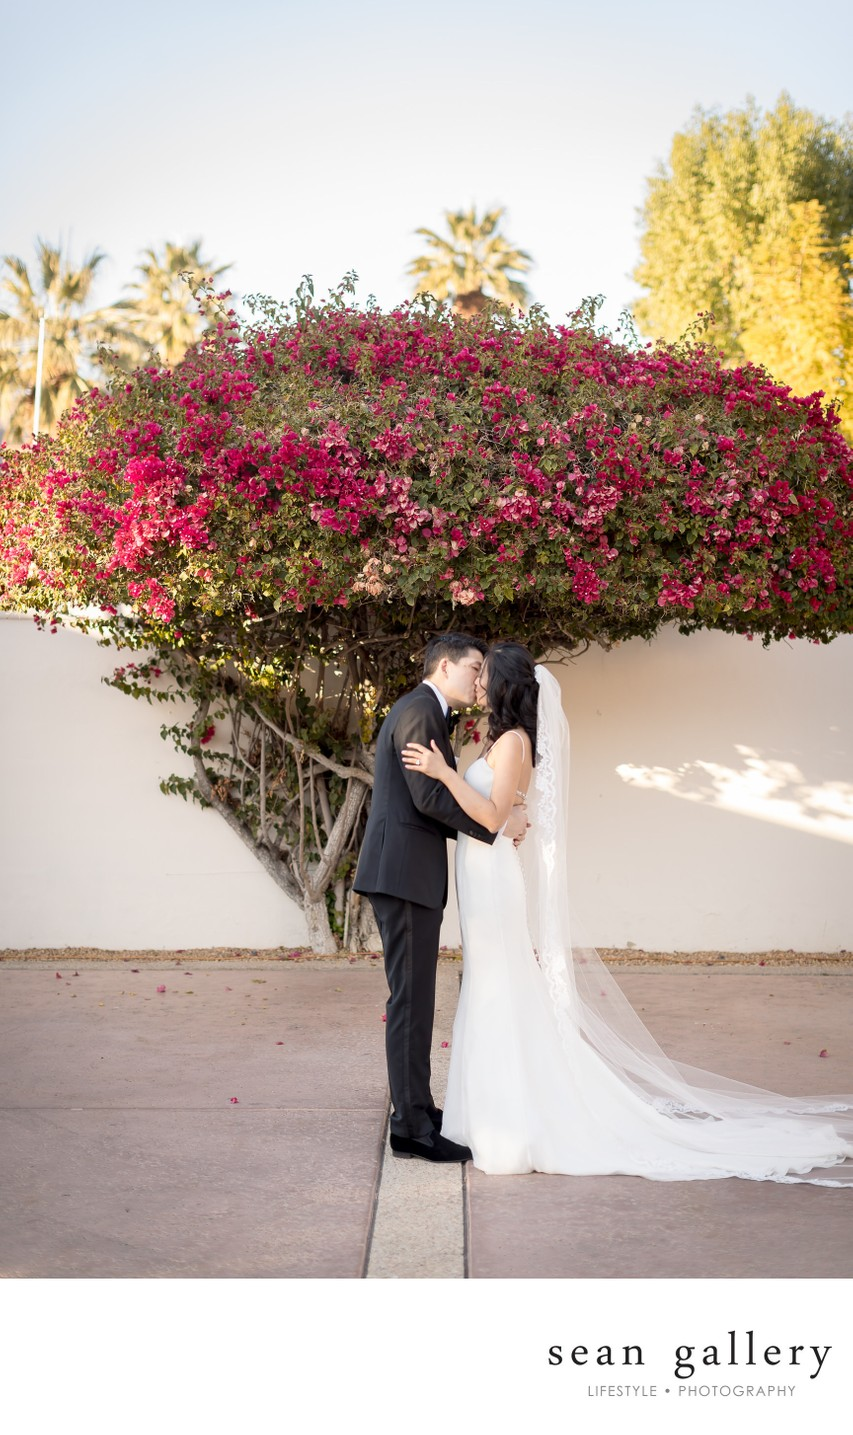 La Quinta Resort Wedding Photos by SeanGalleryutyfuyf